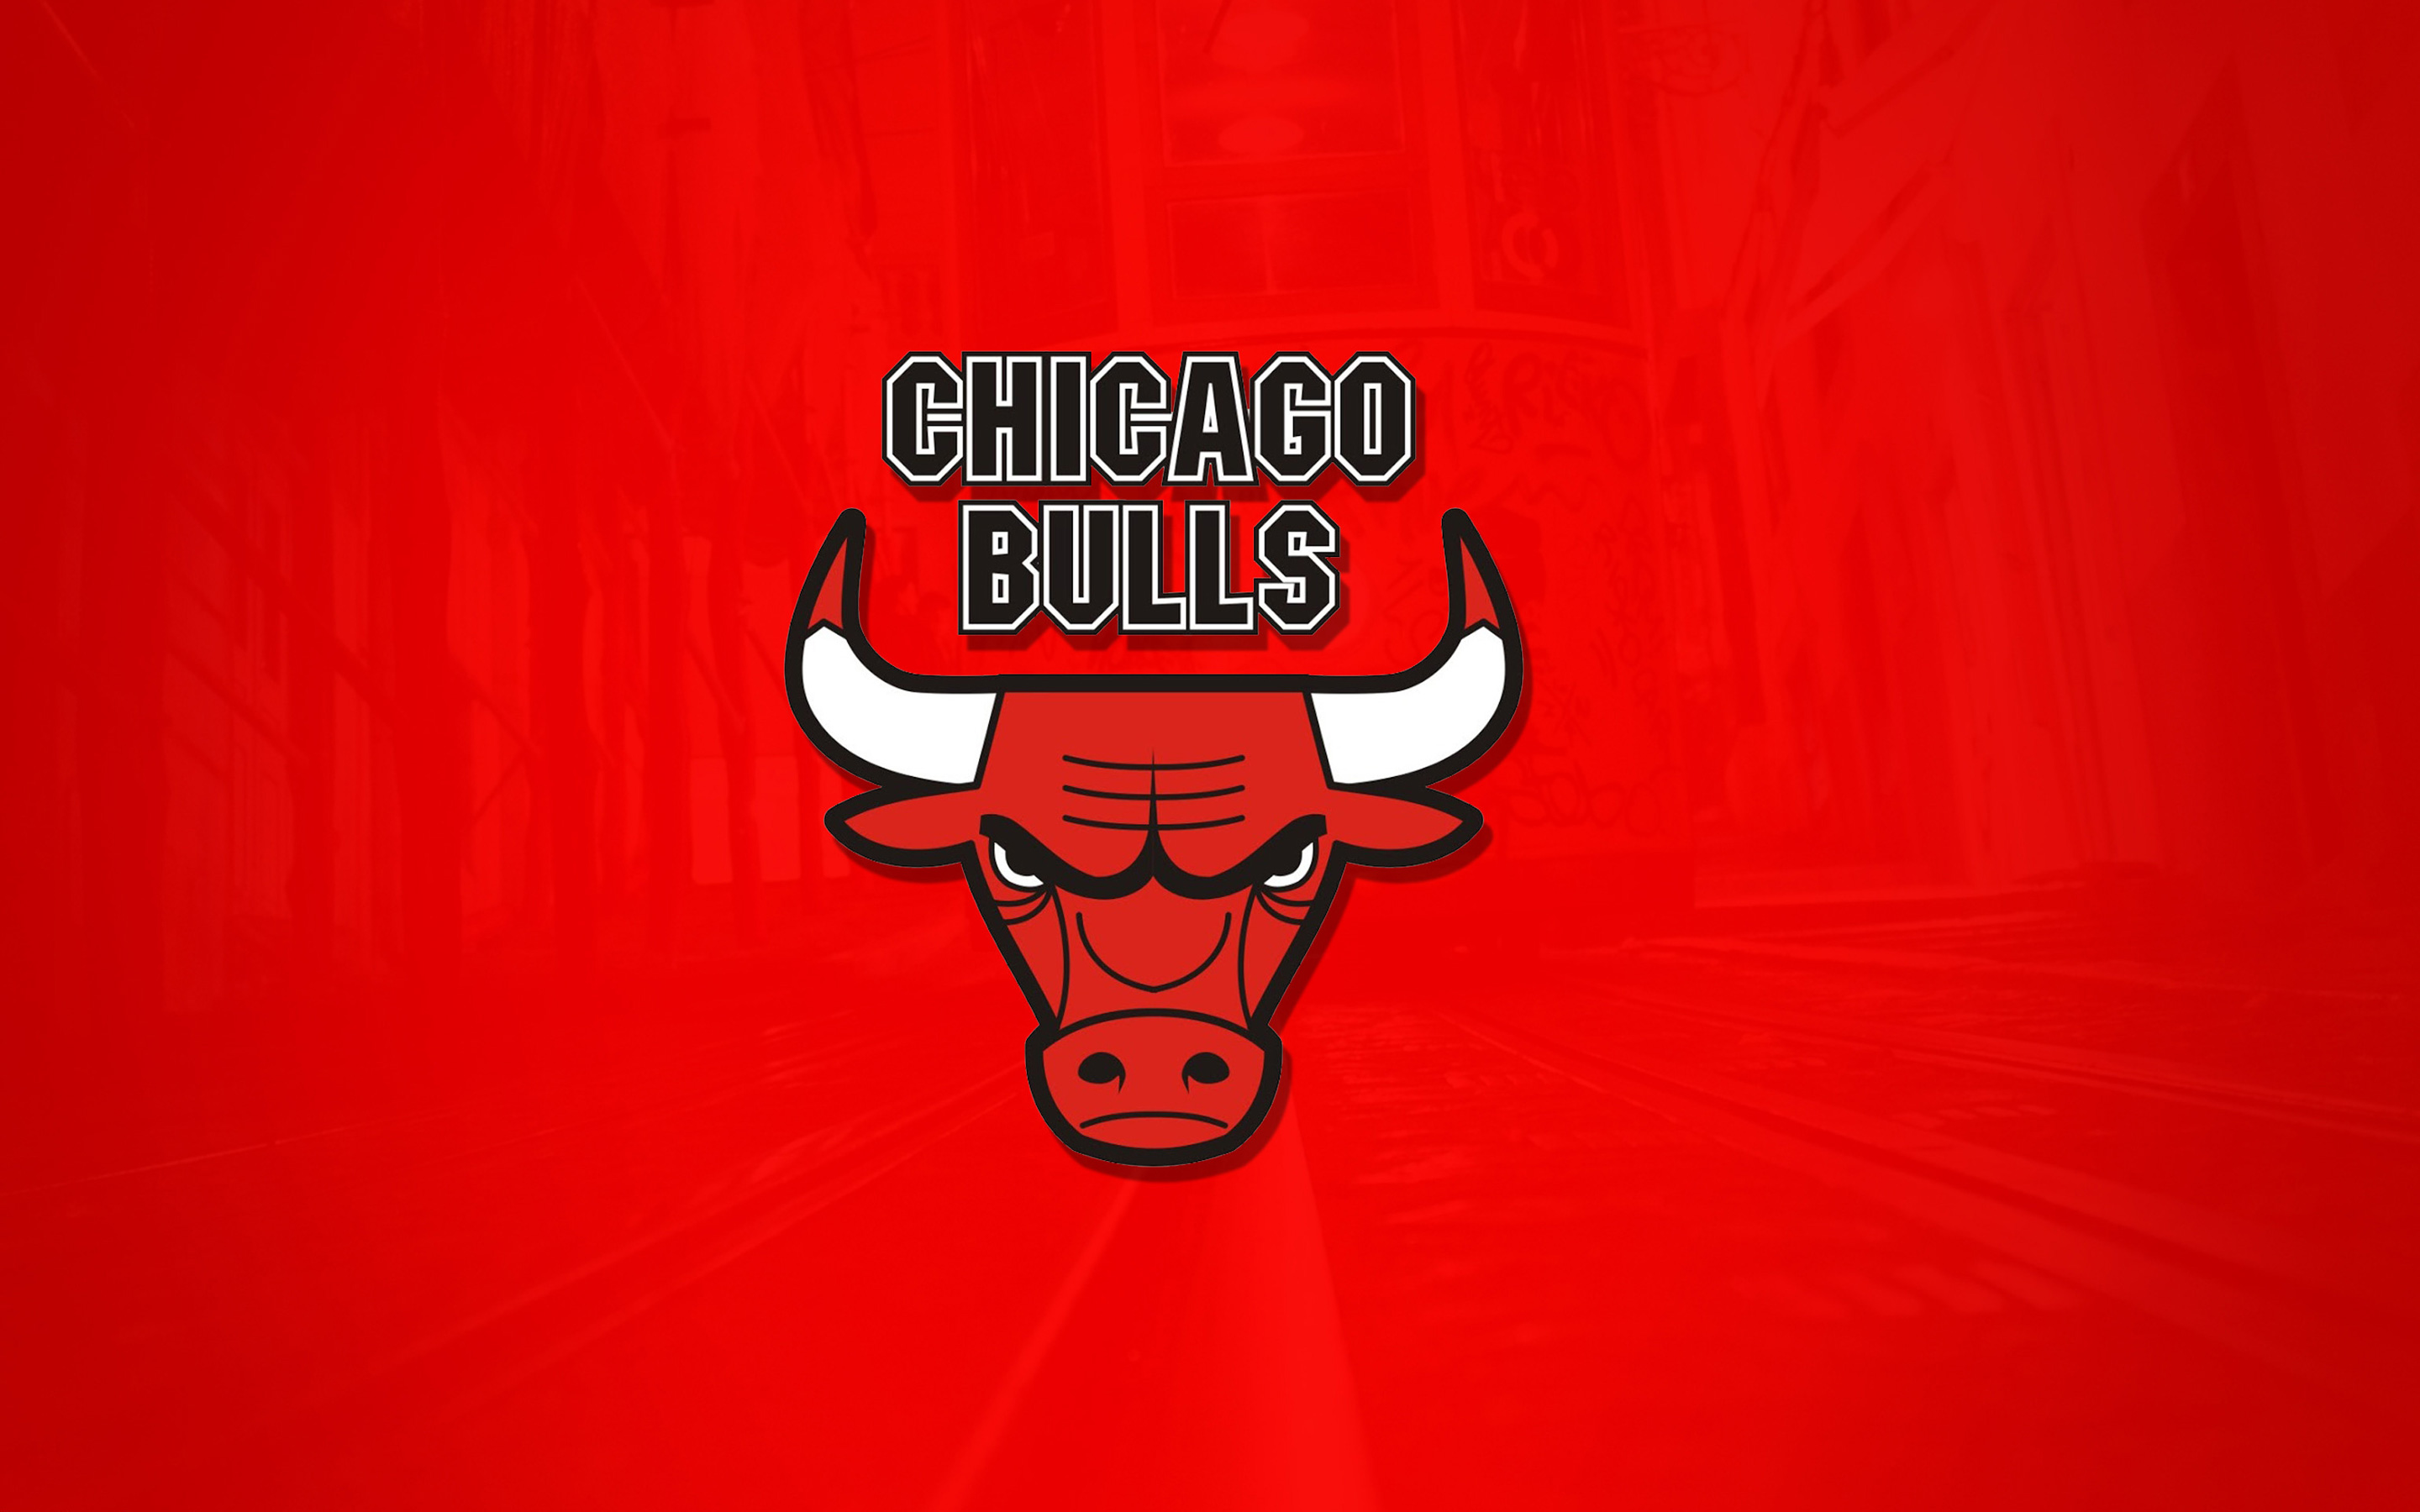 Bulls 4k Wallpapers For Your Desktop Or Mobile Screen Free And Easy To Download